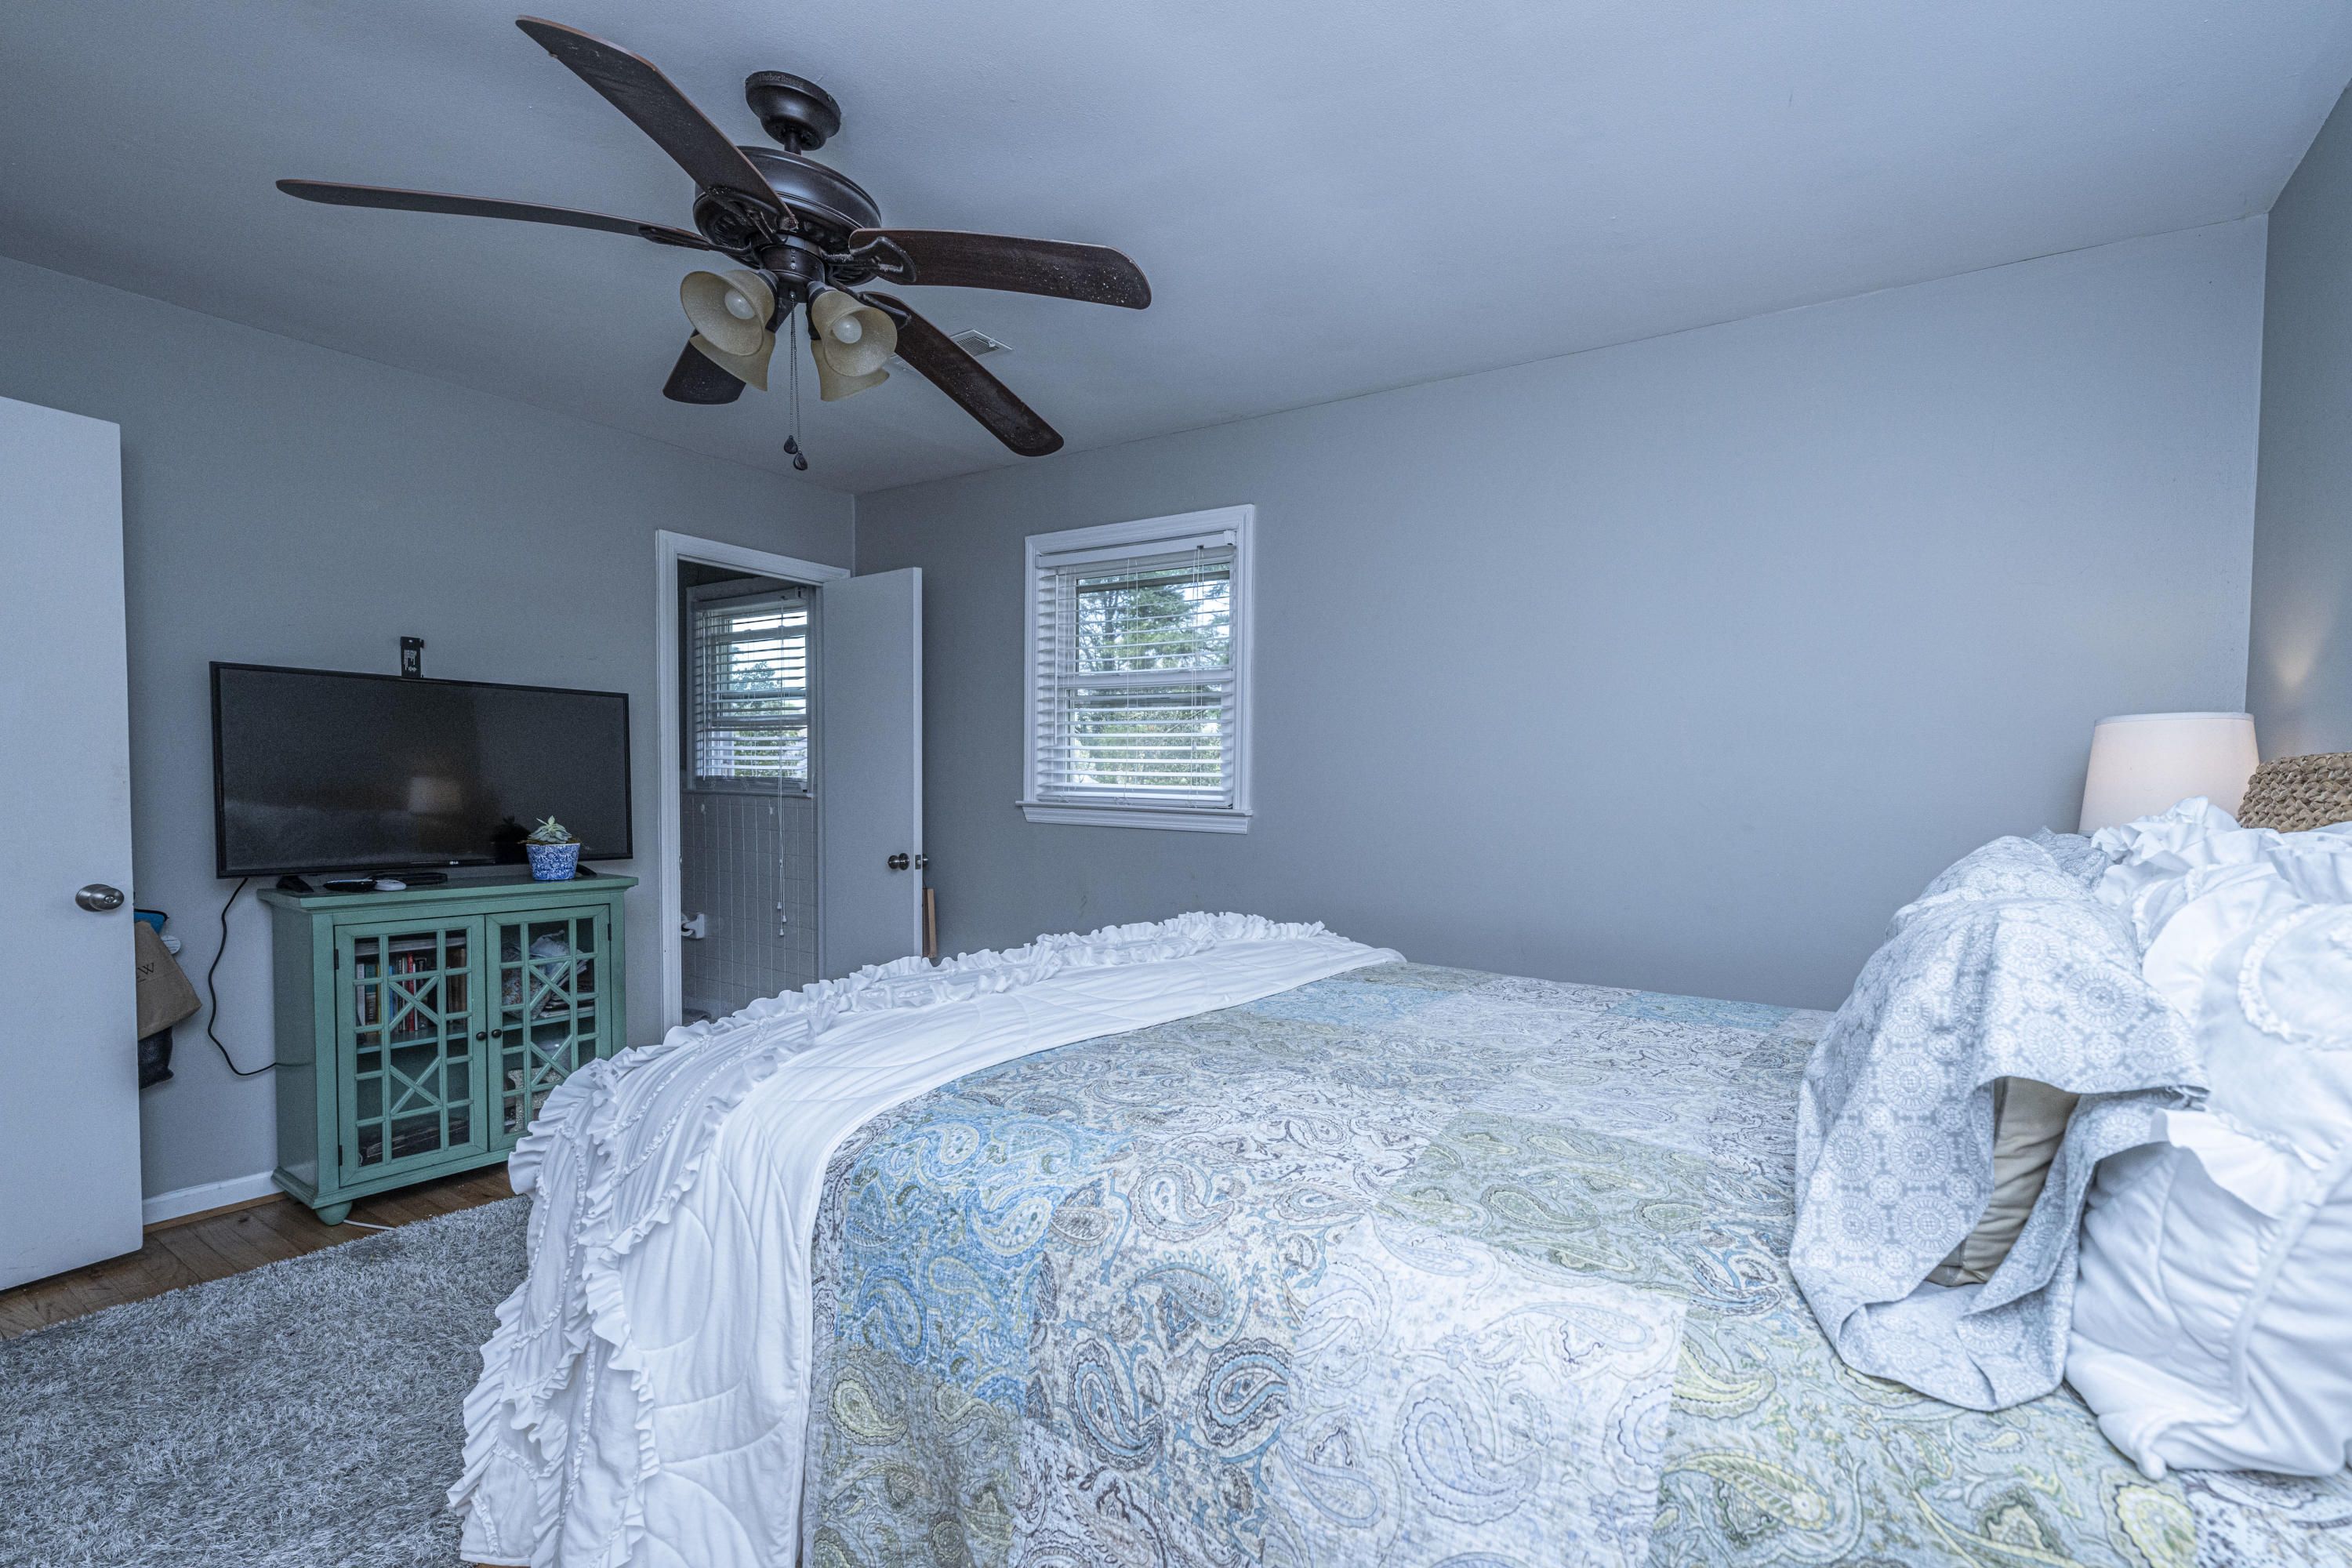 Stiles Point Homes For Sale - 775 Sparrow, Charleston, SC - 1